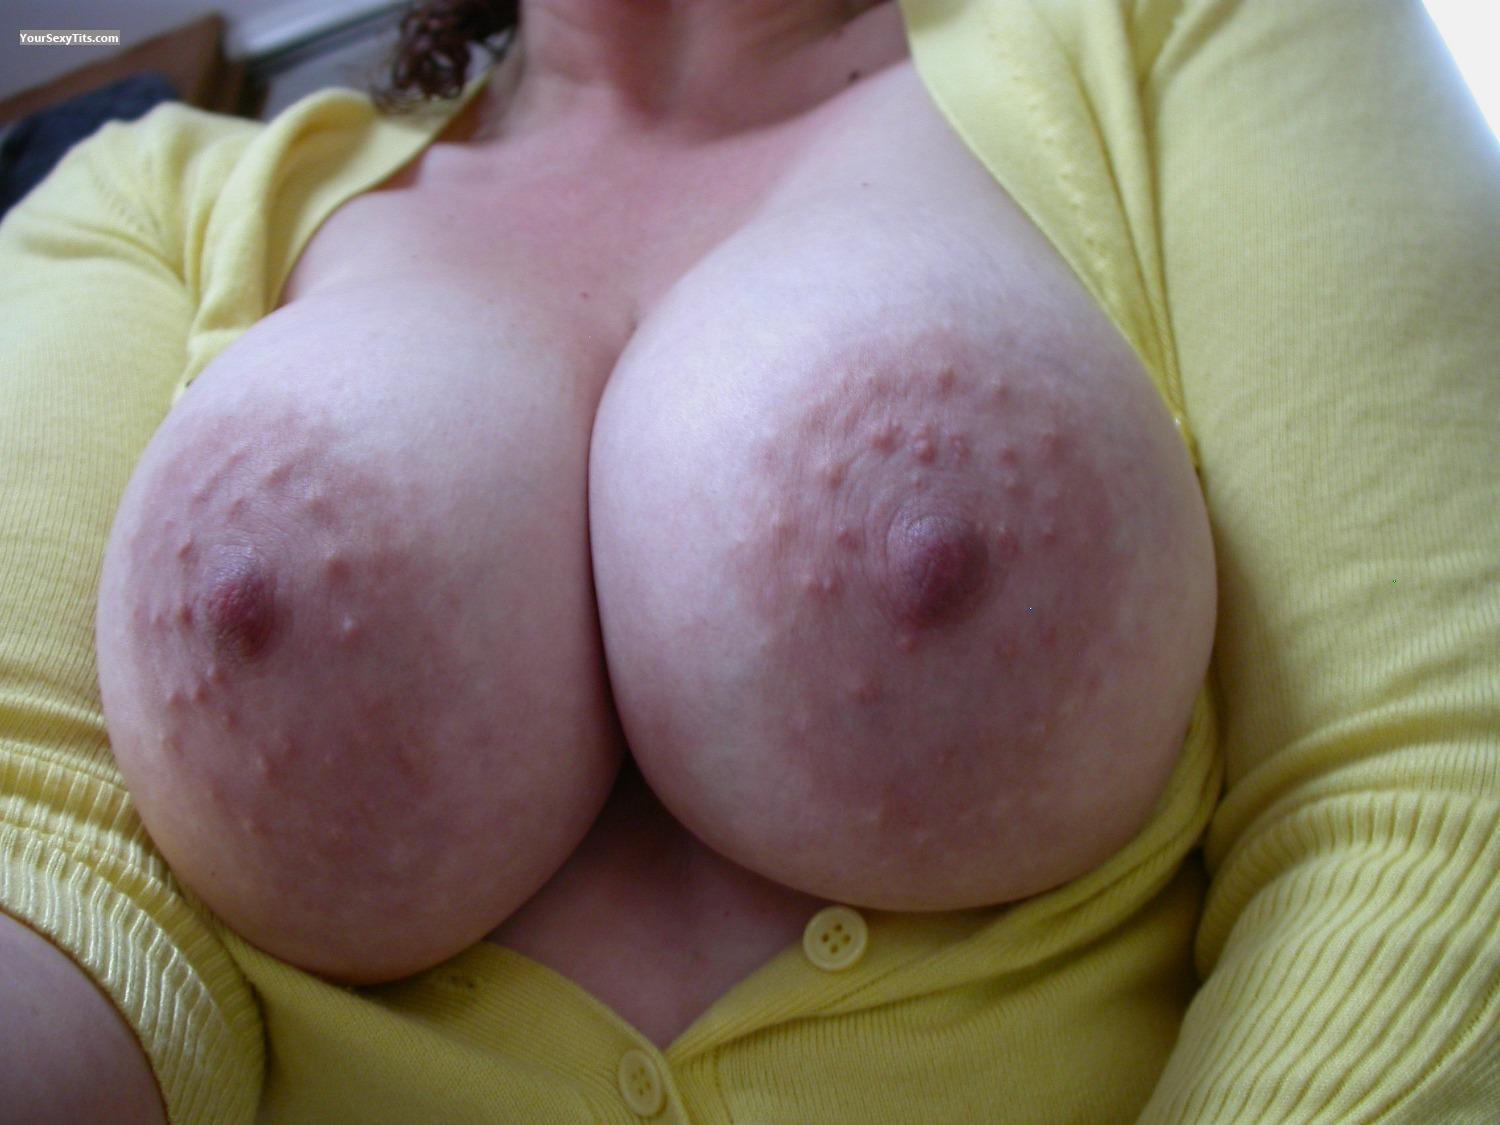 Tit Flash: My Very Big Tits (Selfie) - Jennii from Australia